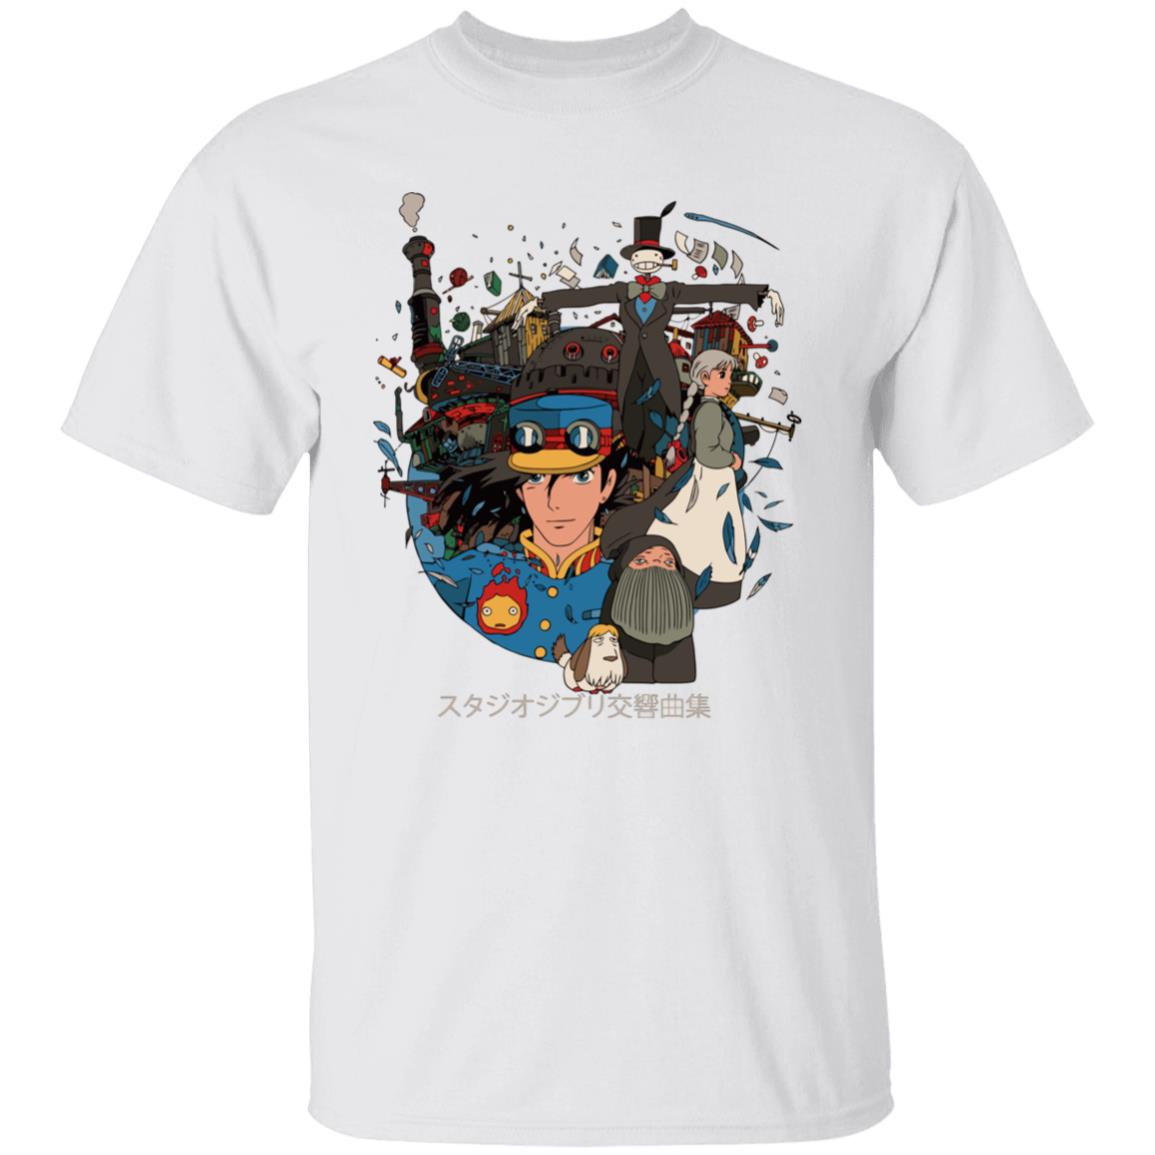 Howl's Moving Castle Characters Compilation T Shirt